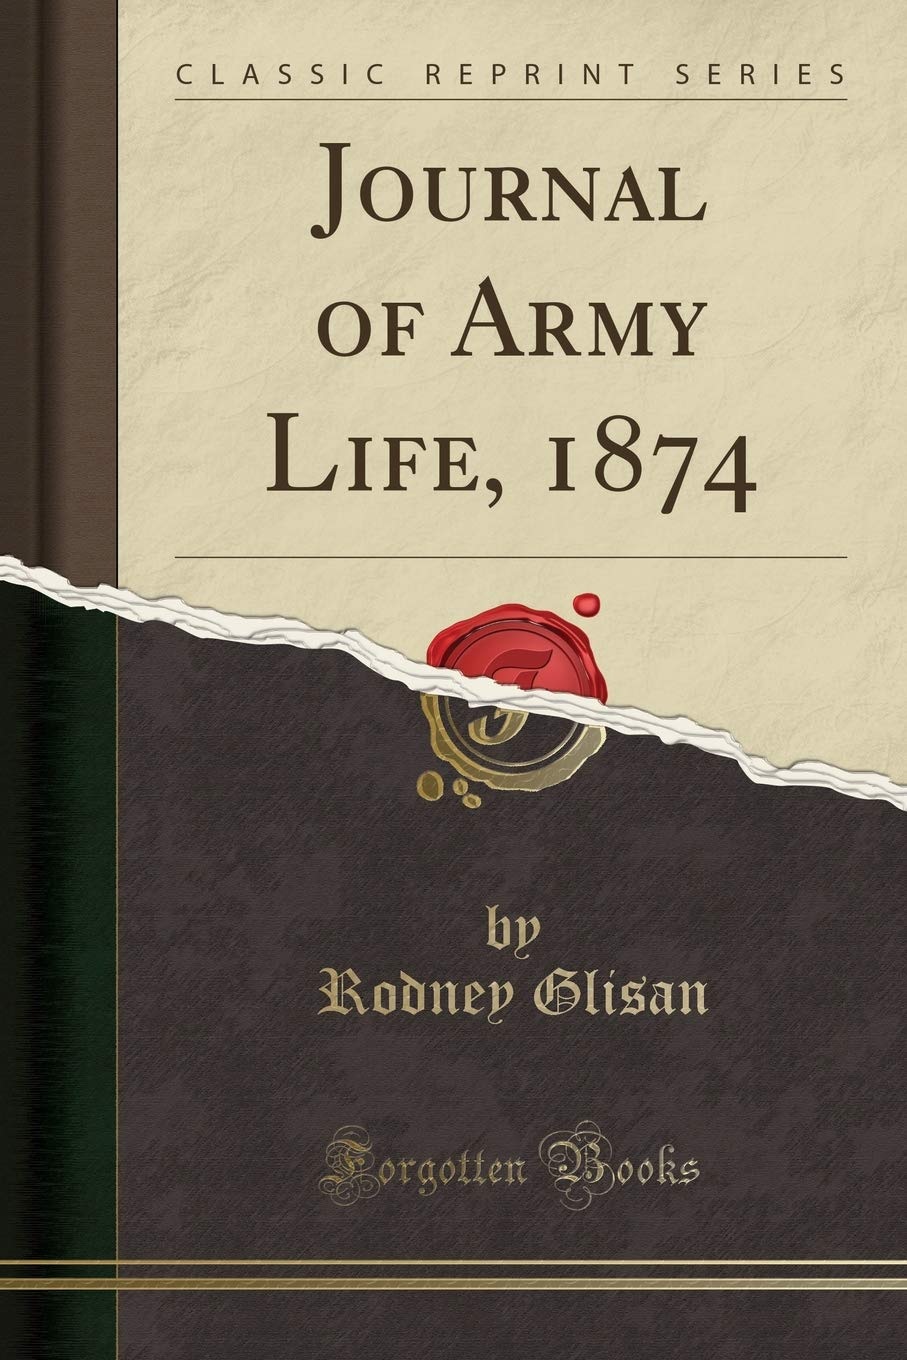 Journal of Army Life, 1874 (Classic Reprint): Rodney Glisan: 9781330928103:  Amazon.com: Books